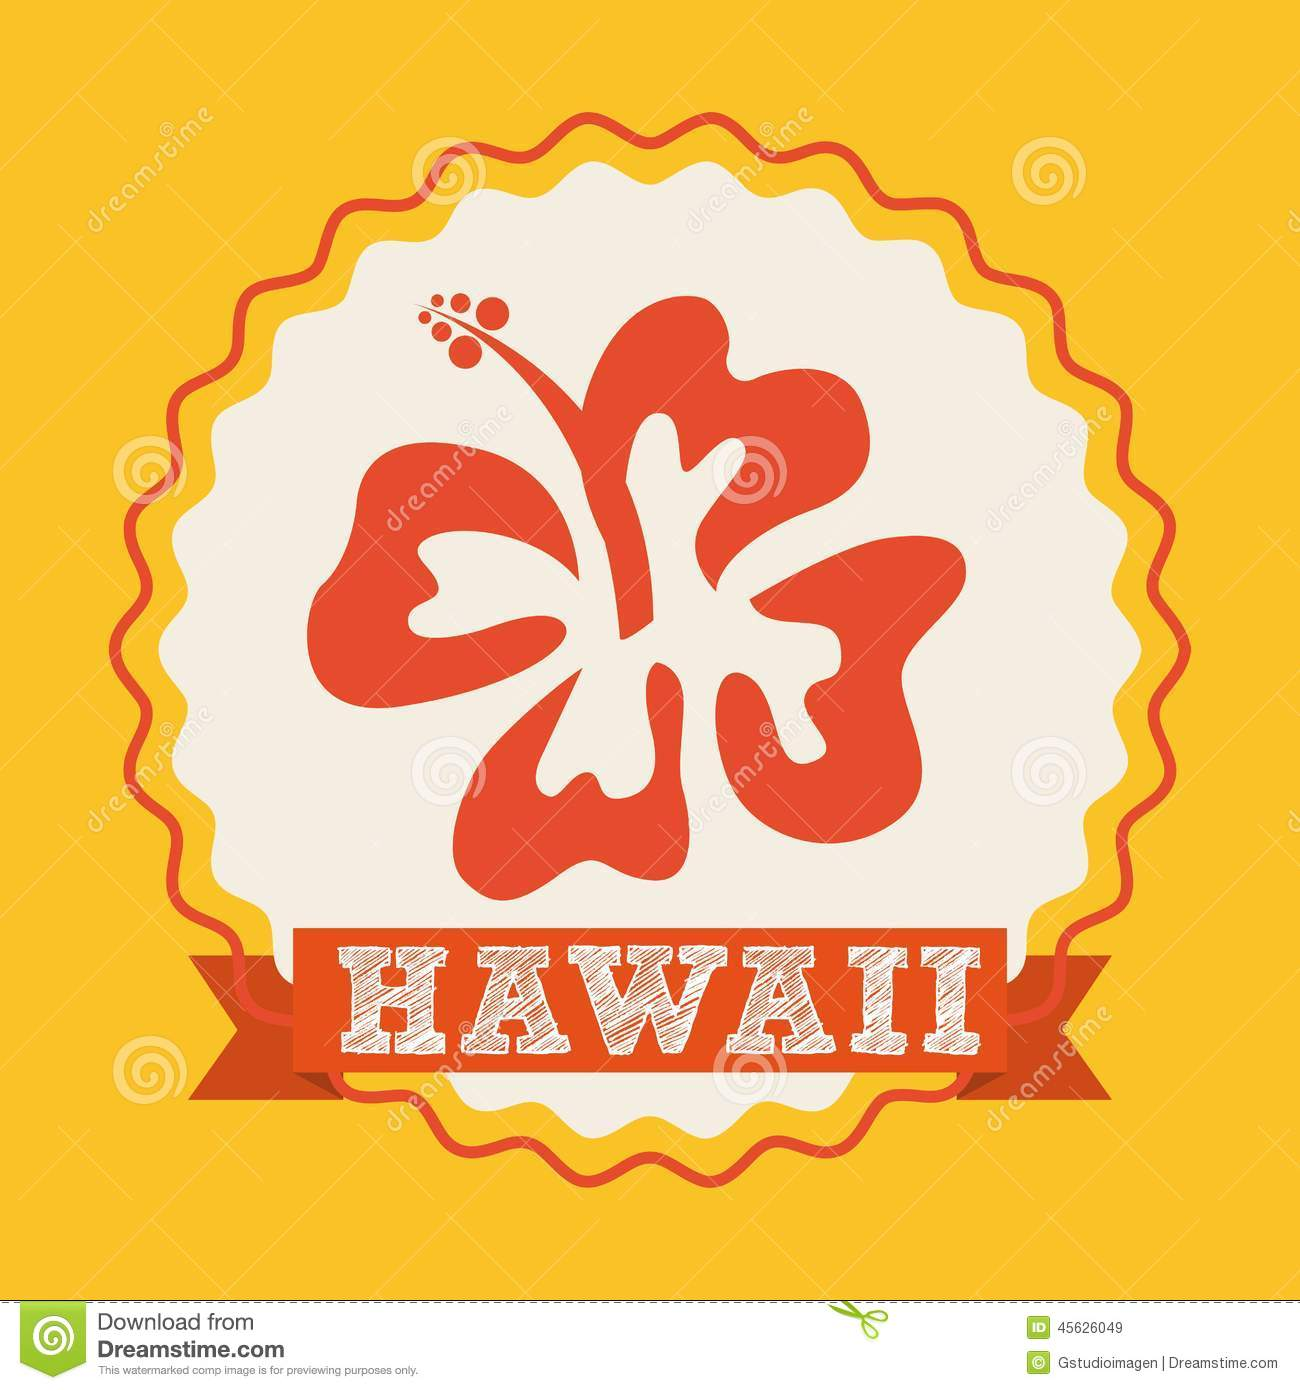 Hawaii Flower Design